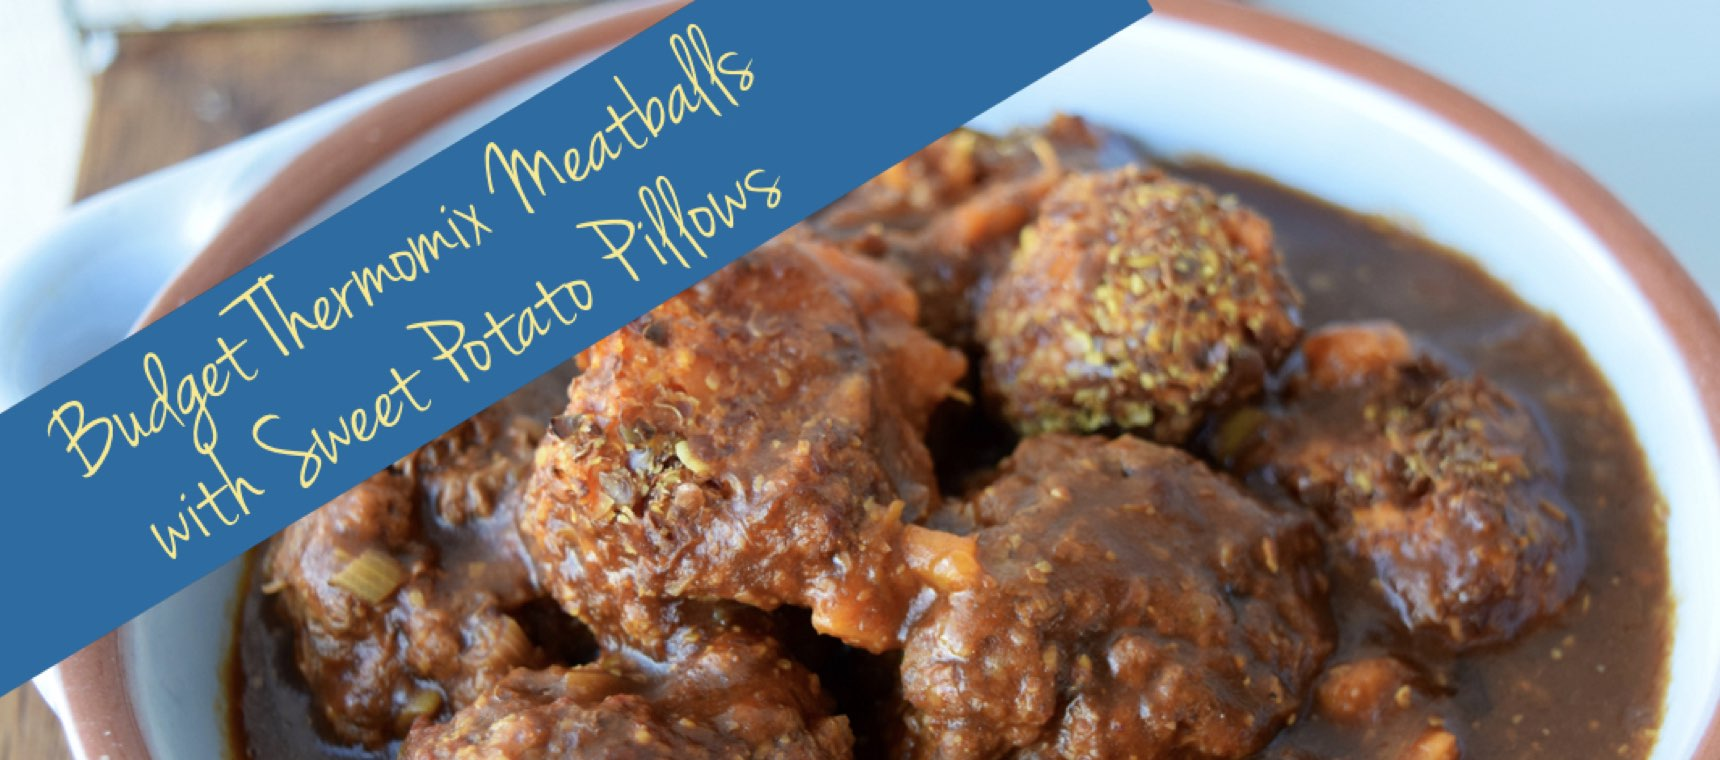 Budget Thermomix Meatballs with Sweet Potato Pillows